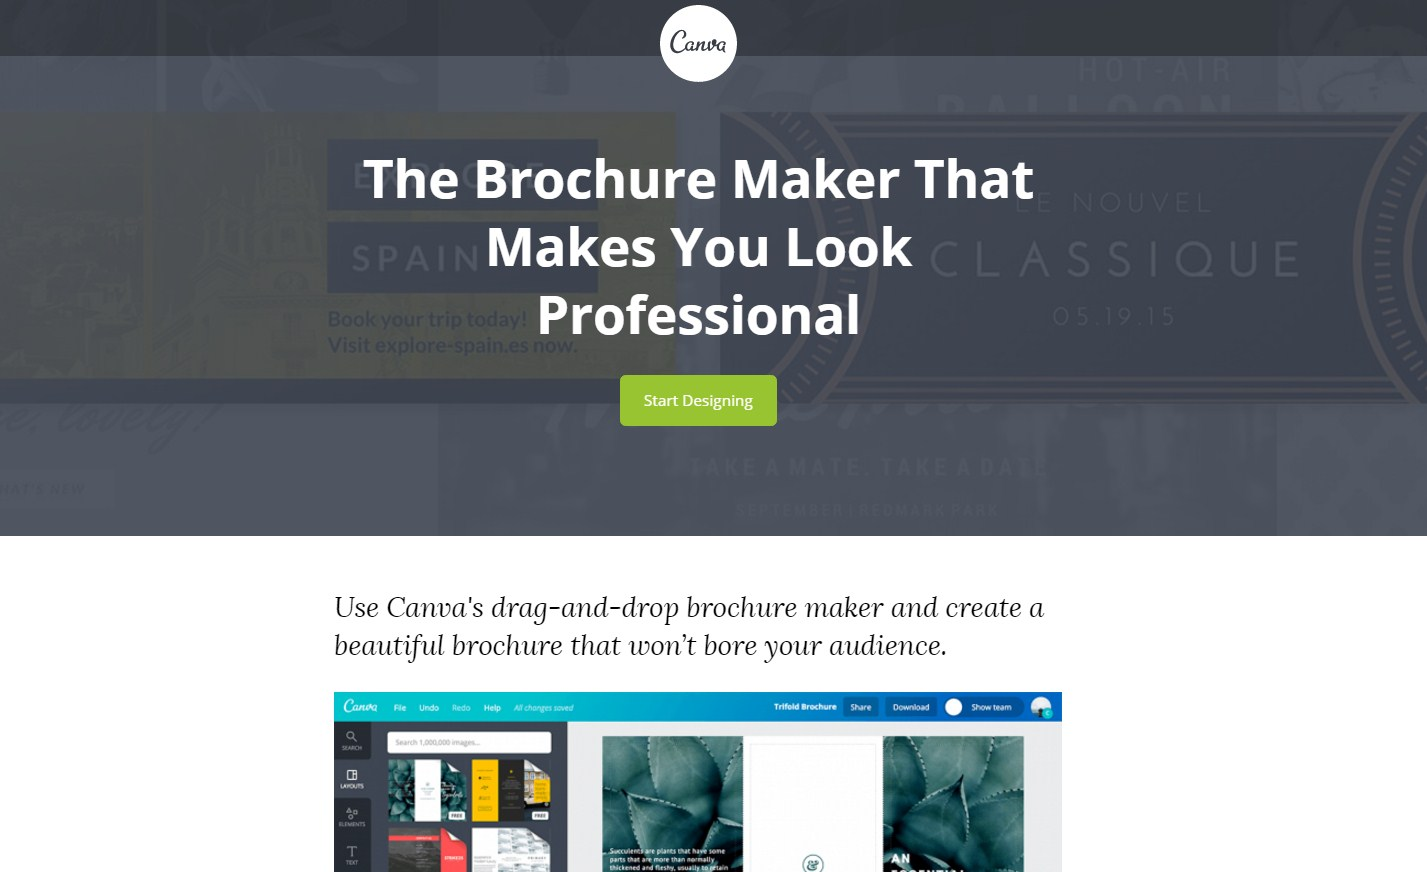 canva brochure tool